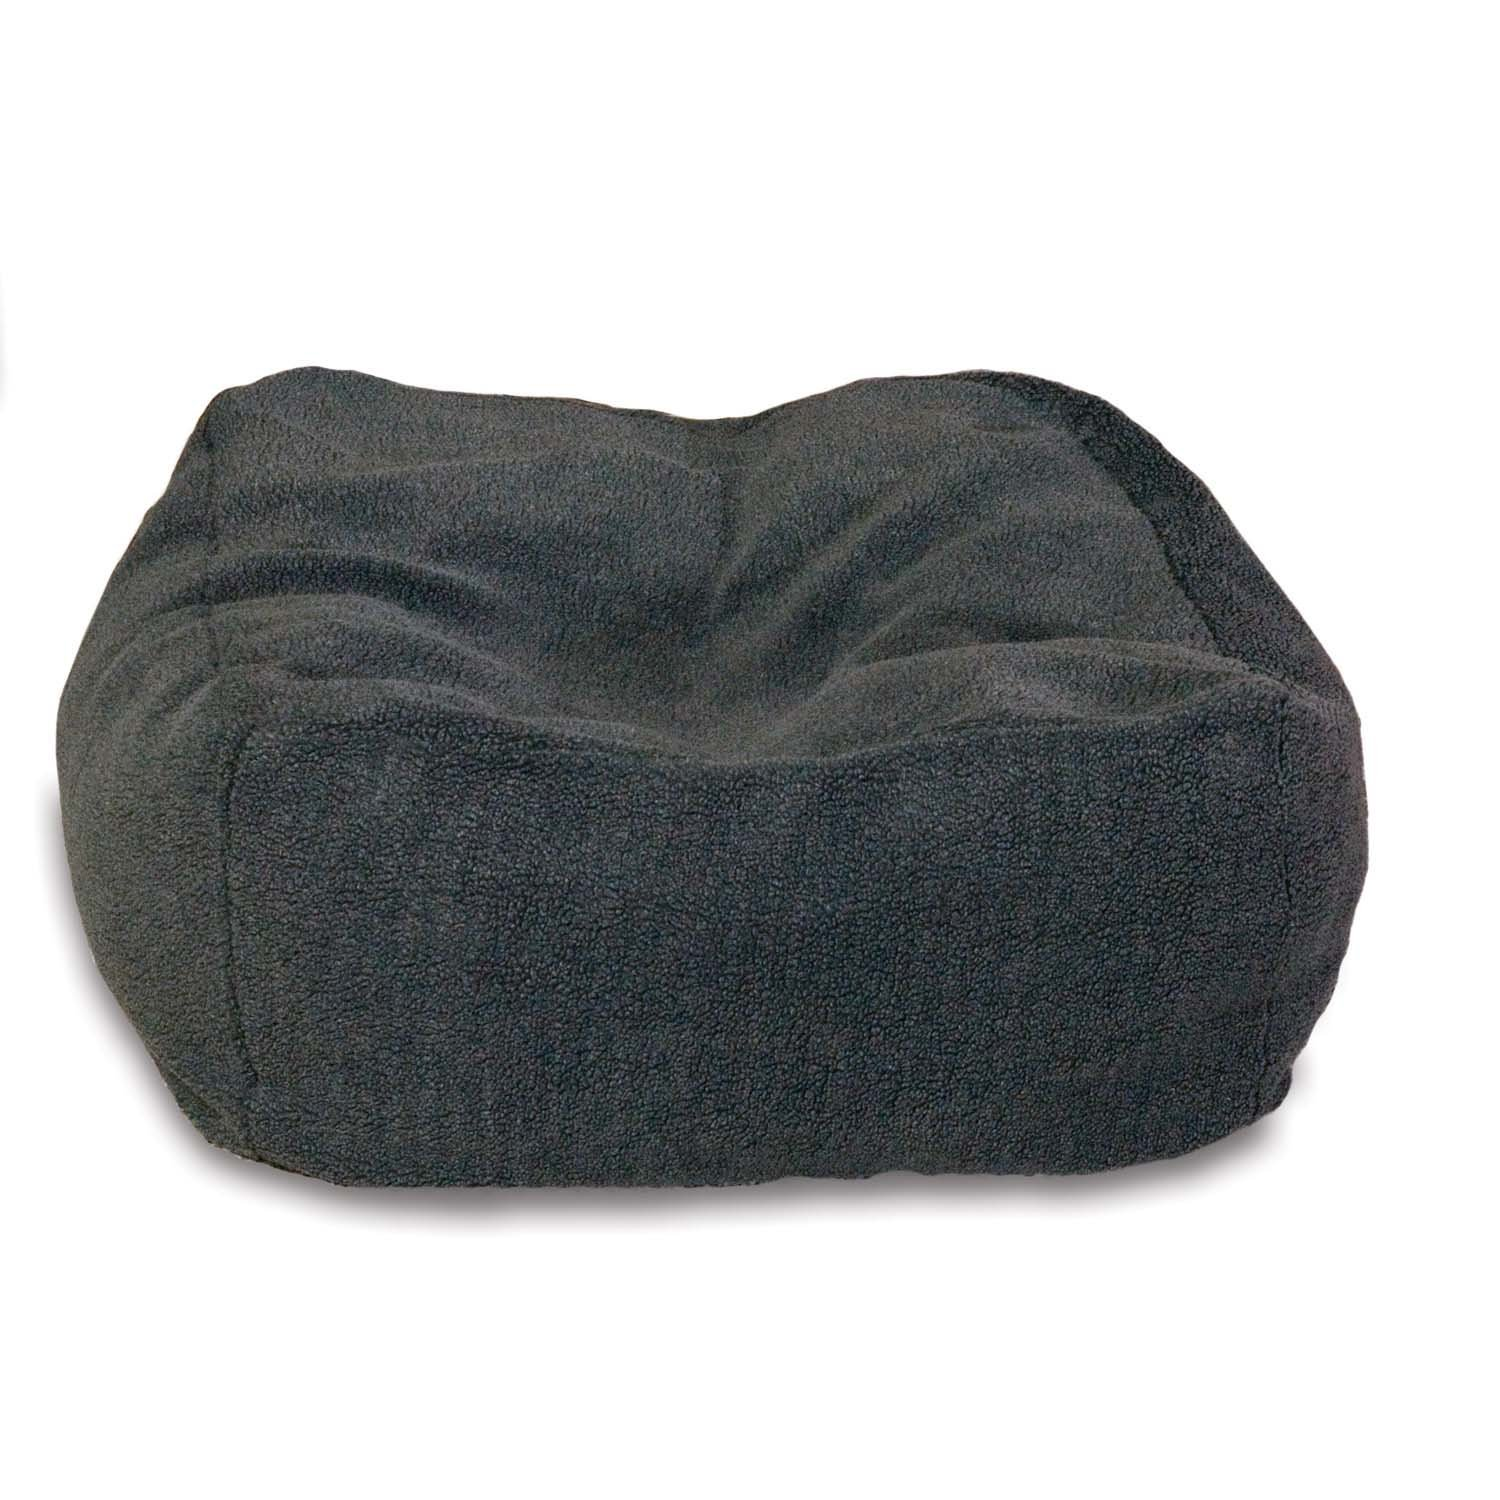 K& H Manufacturing Cuddle Cube Pet Bed, Large 32-Inch by 32-Inch, Gray 7522